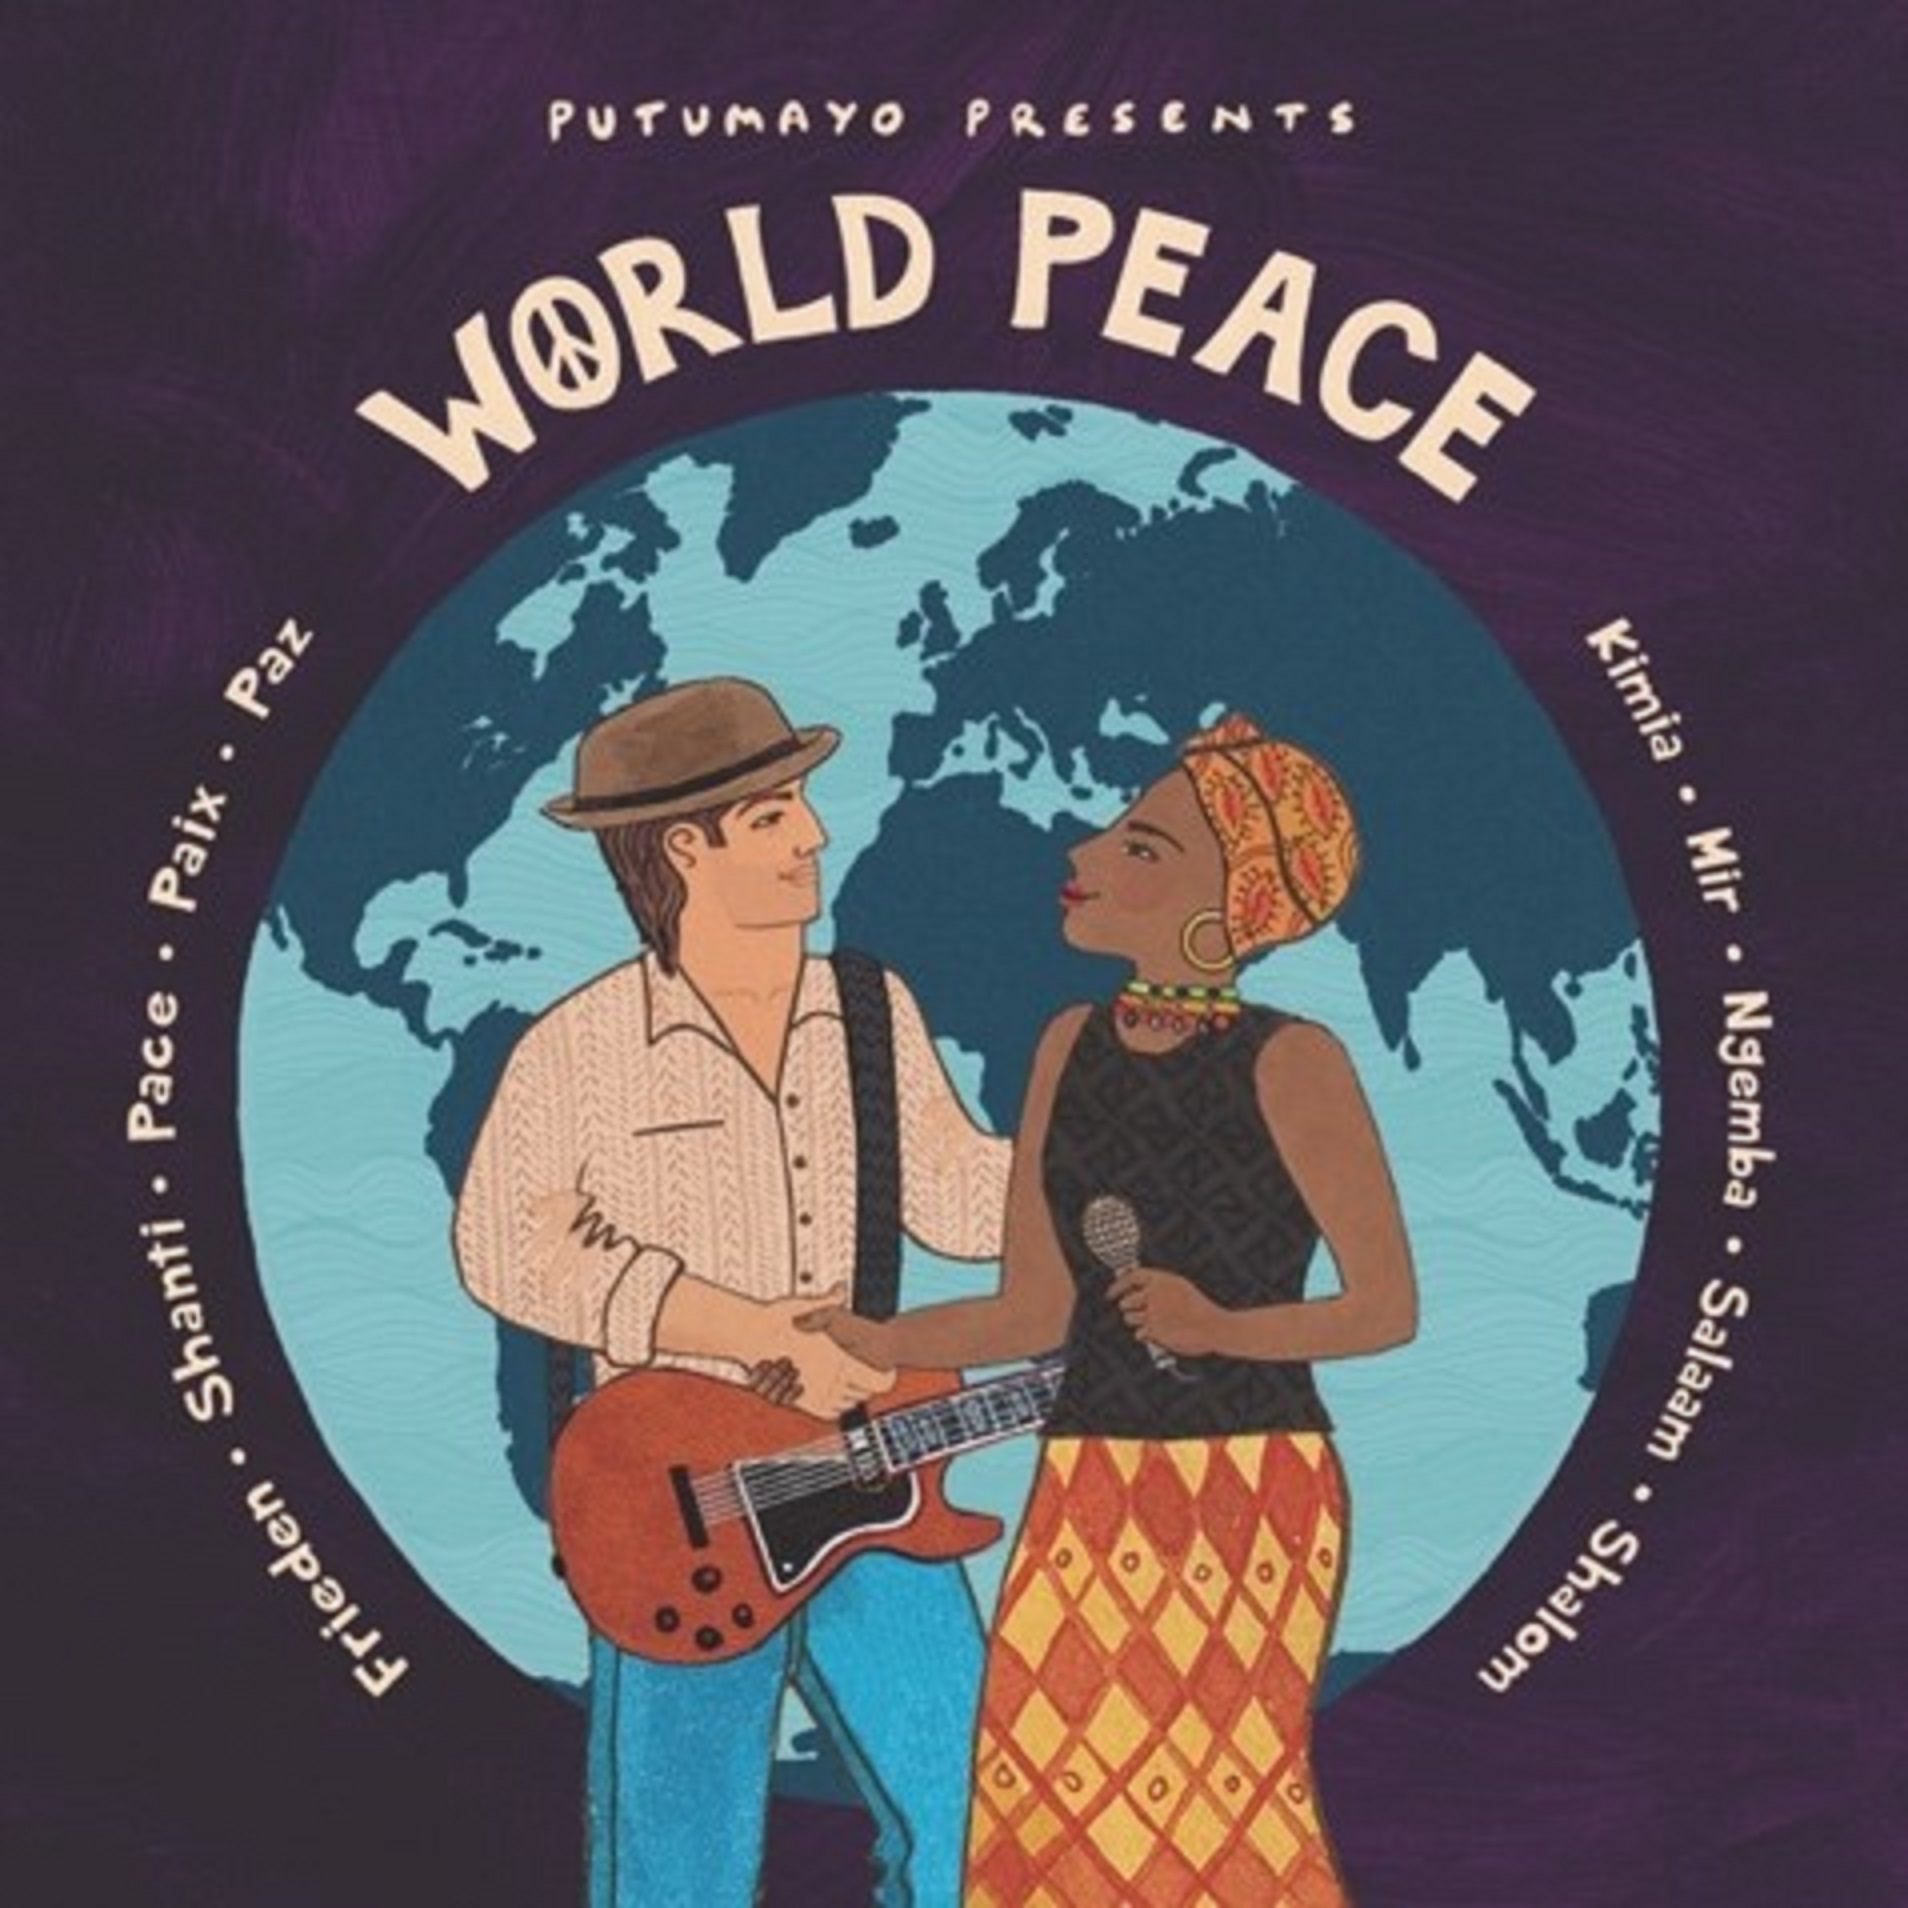 Putumayo releases World Peace w/Jackson Browne & more